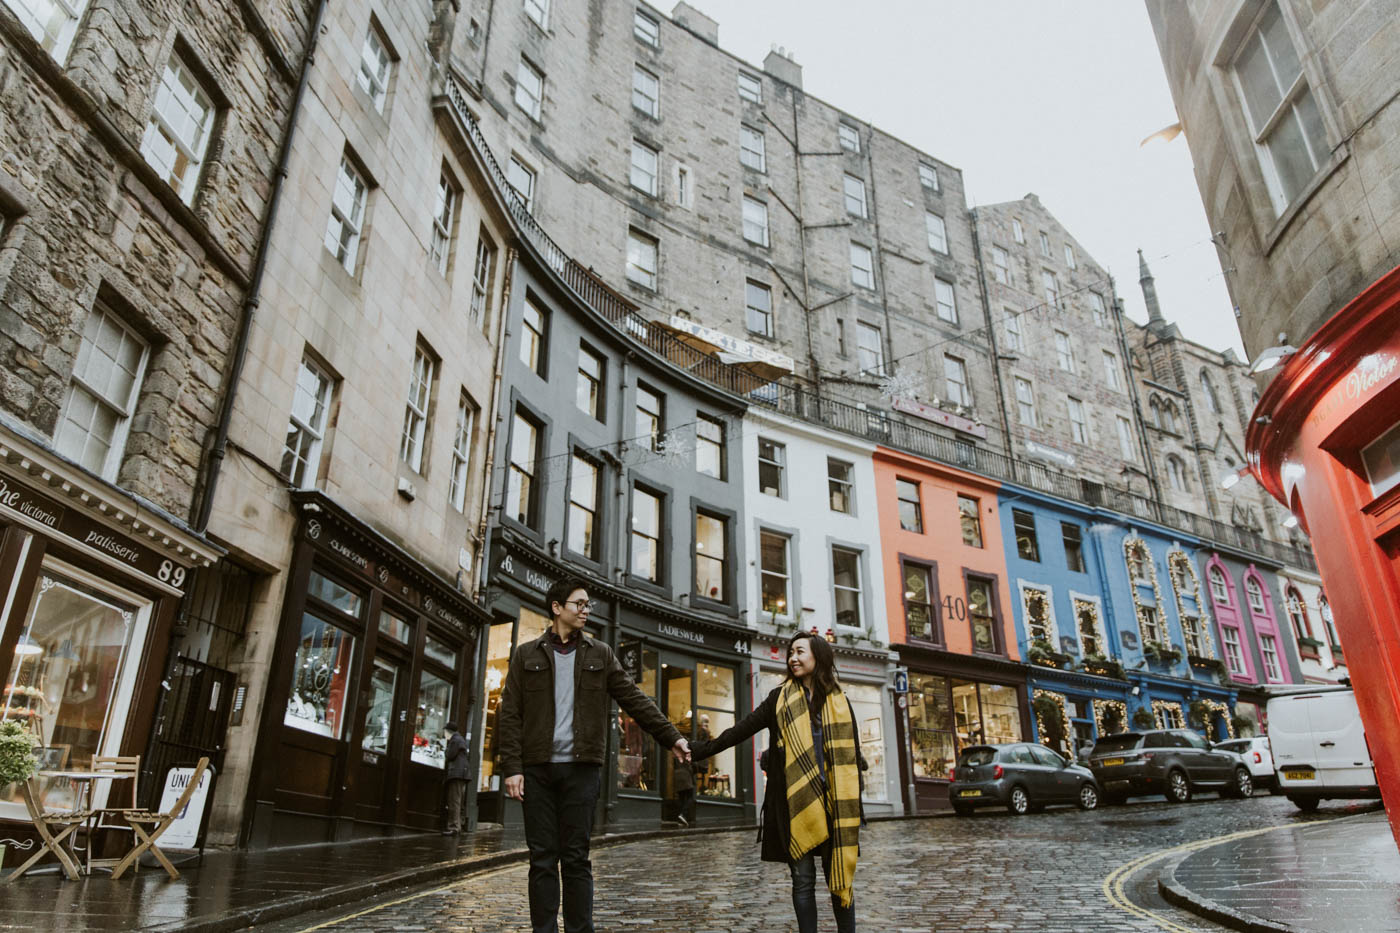 Edinburgh Old Town Engagement Photoshoot by Ceranna Photography